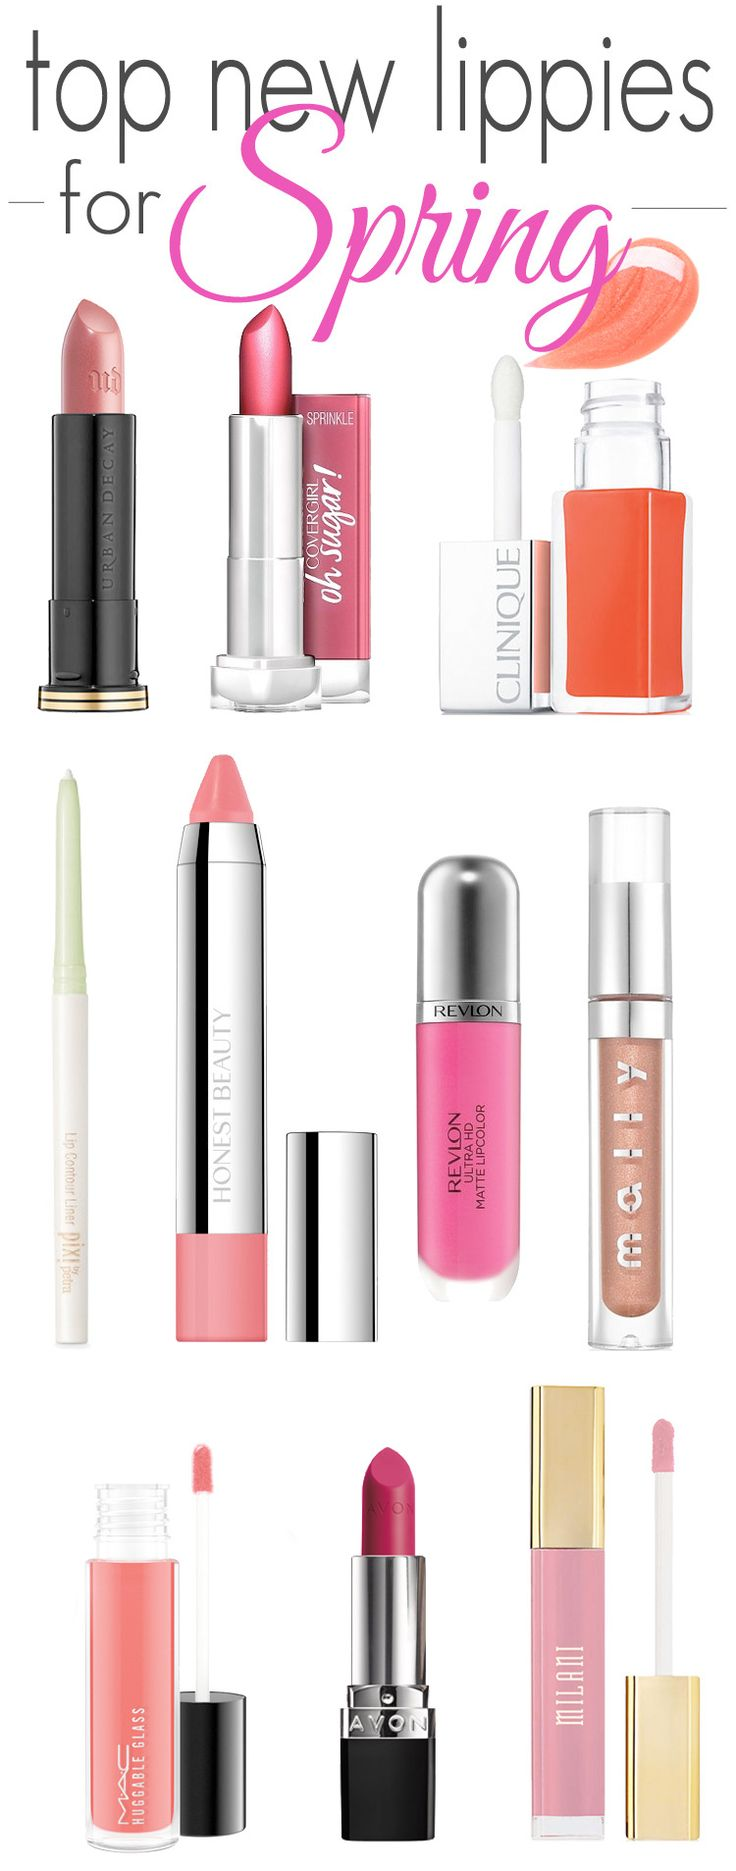 Top 10 new lip products for spring: the best lipstick, lipgloss, lipliners, lip balms and matte lipsticks that you need in your cosmetic bag for the season! Add one of these to you beauty collection today.